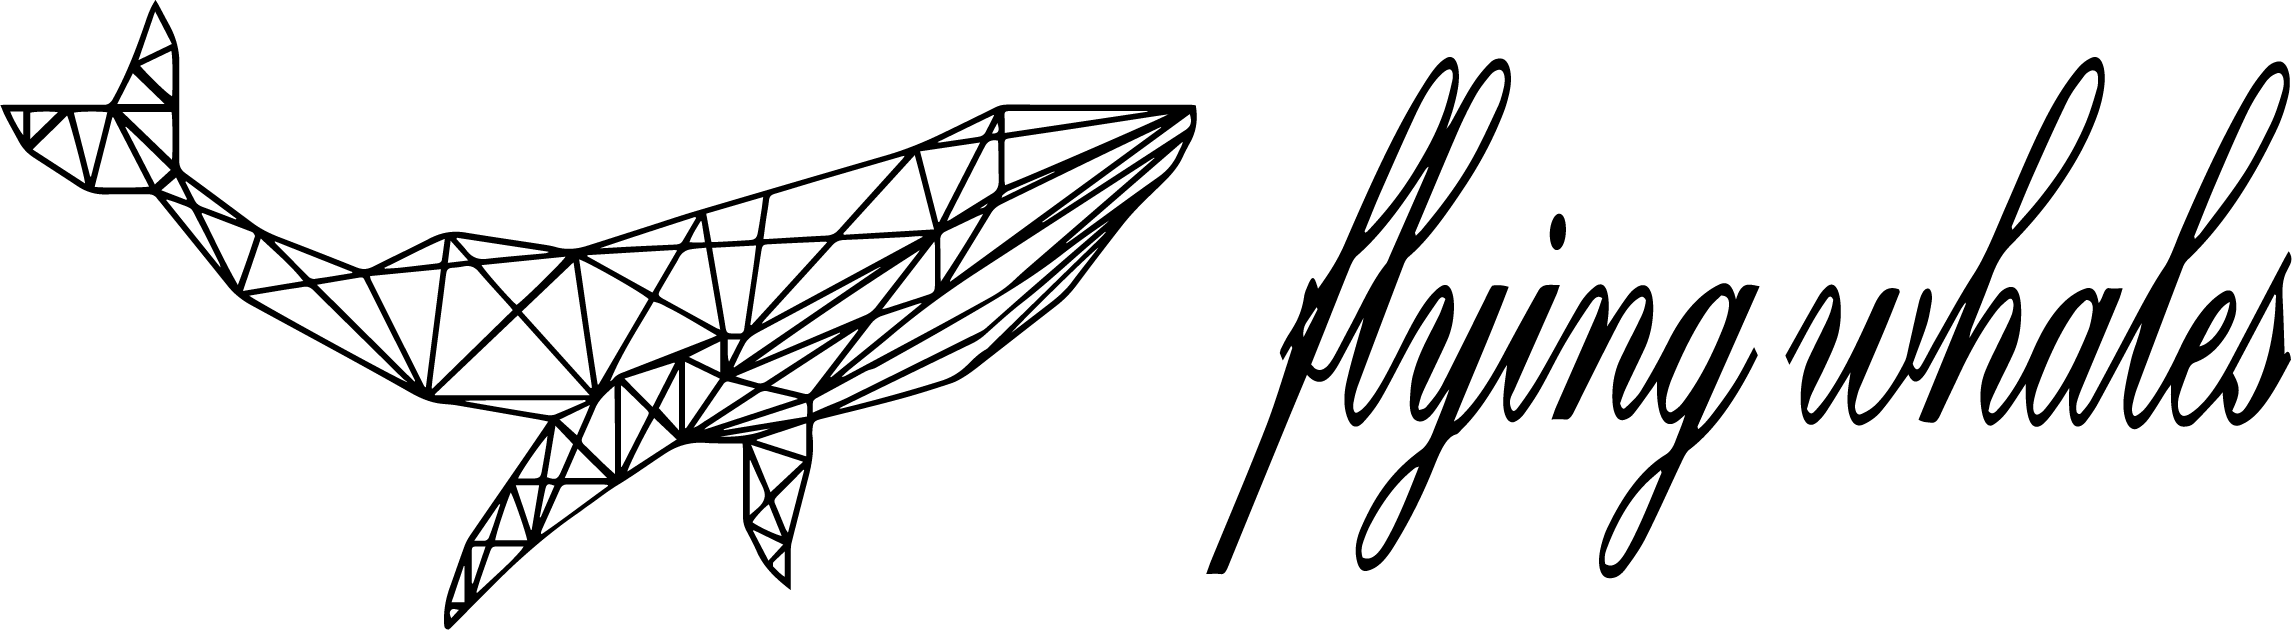 Flying Whales ltd